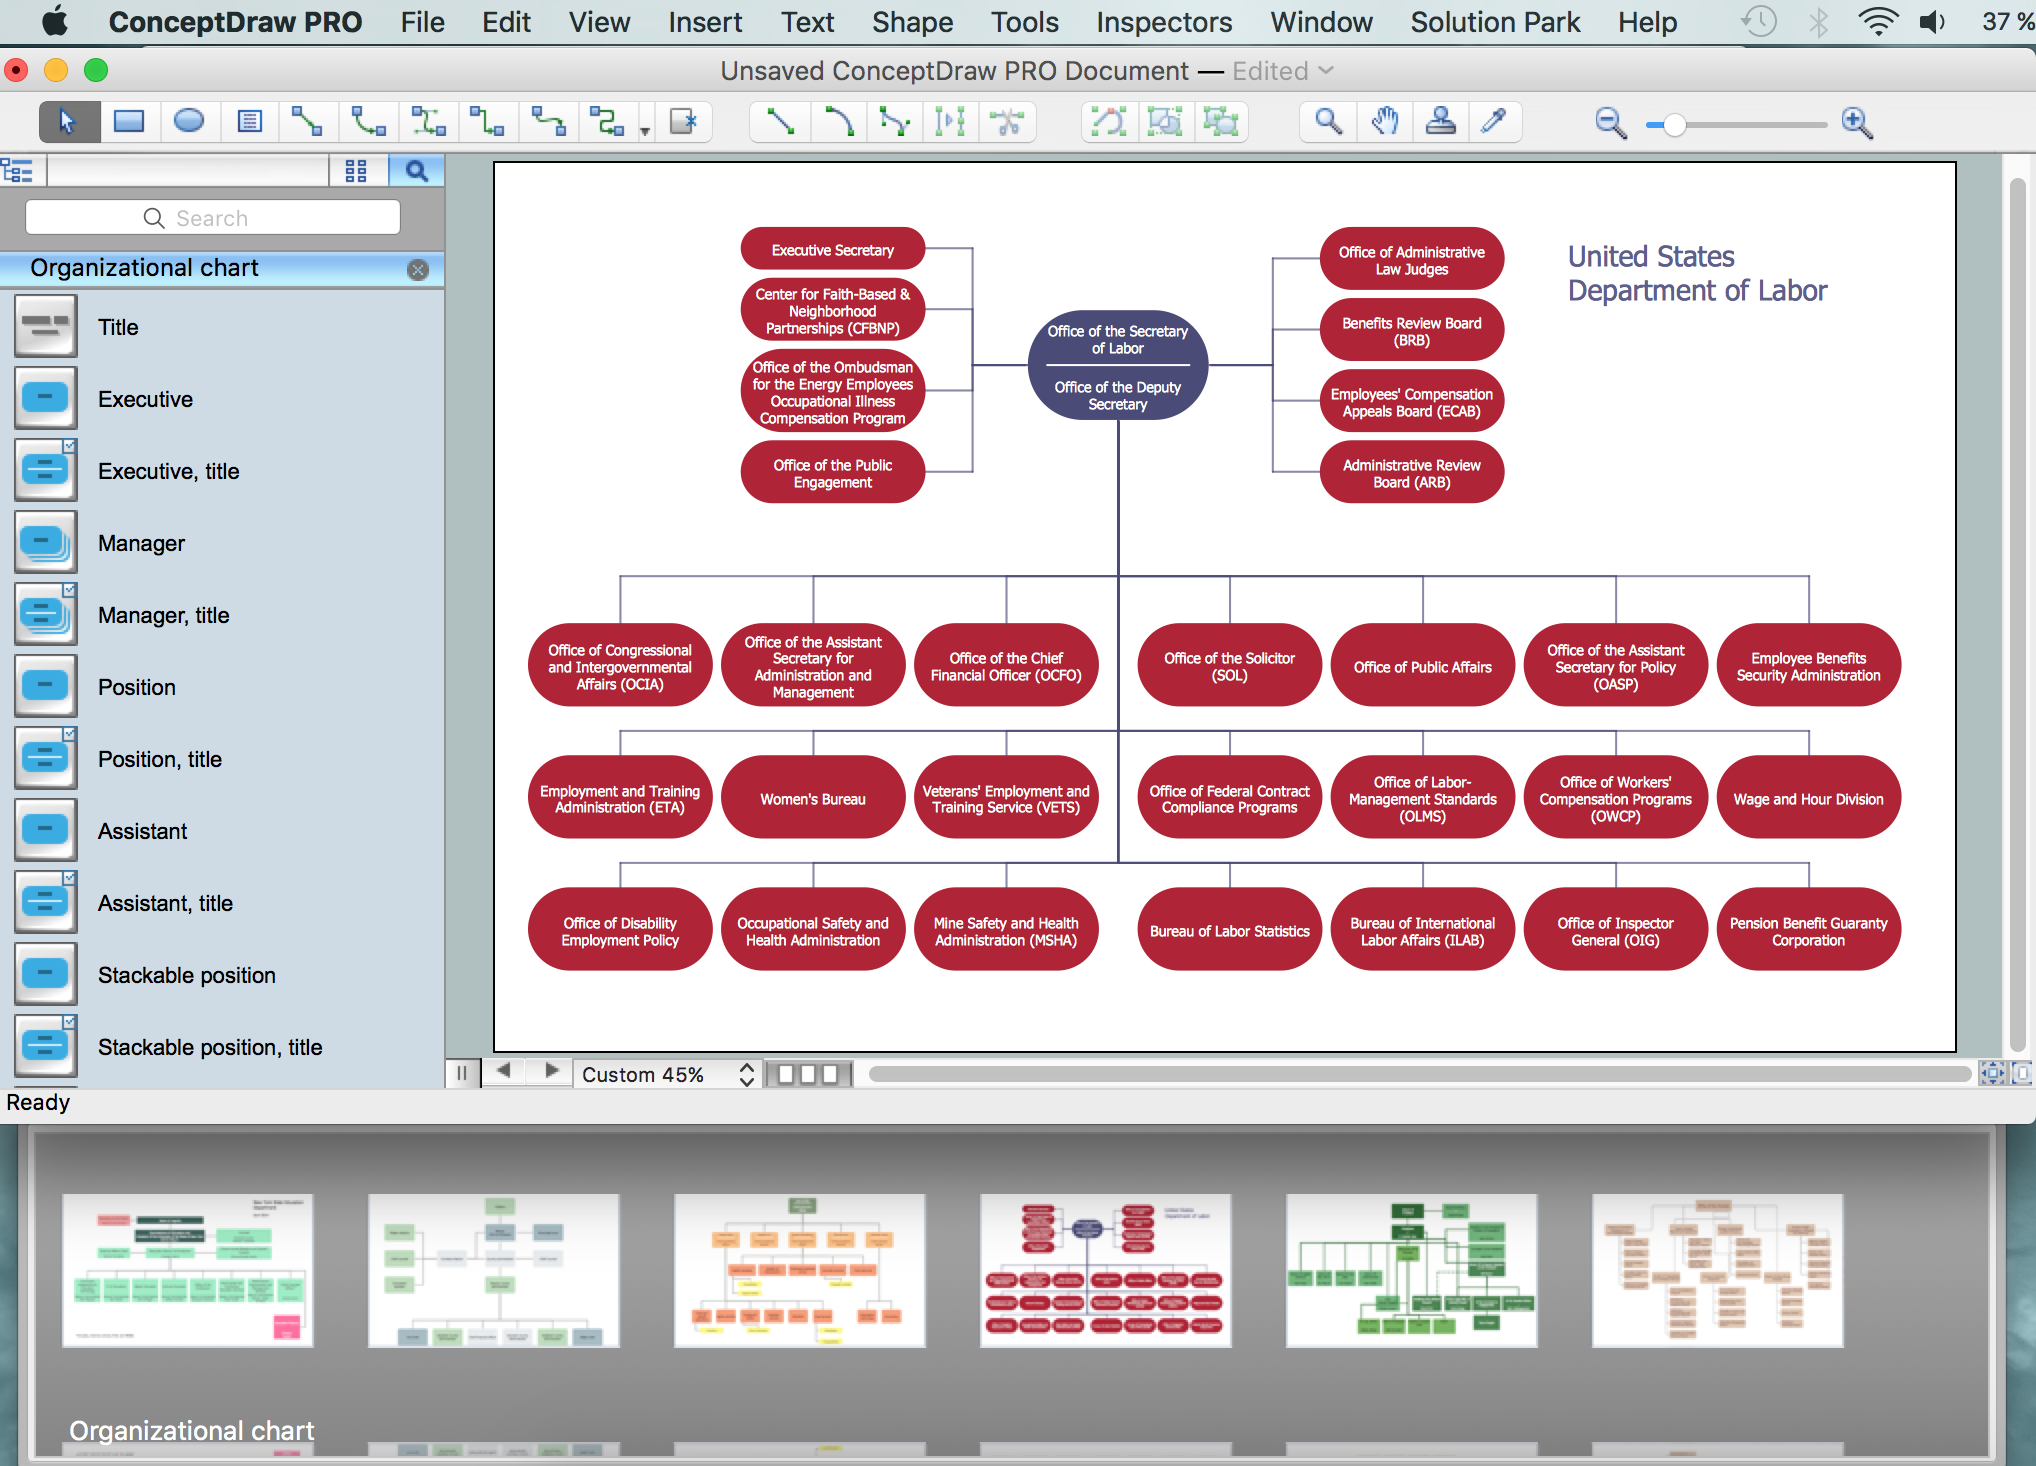 ConceptDraw DIAGRAM - Organizational chart software *